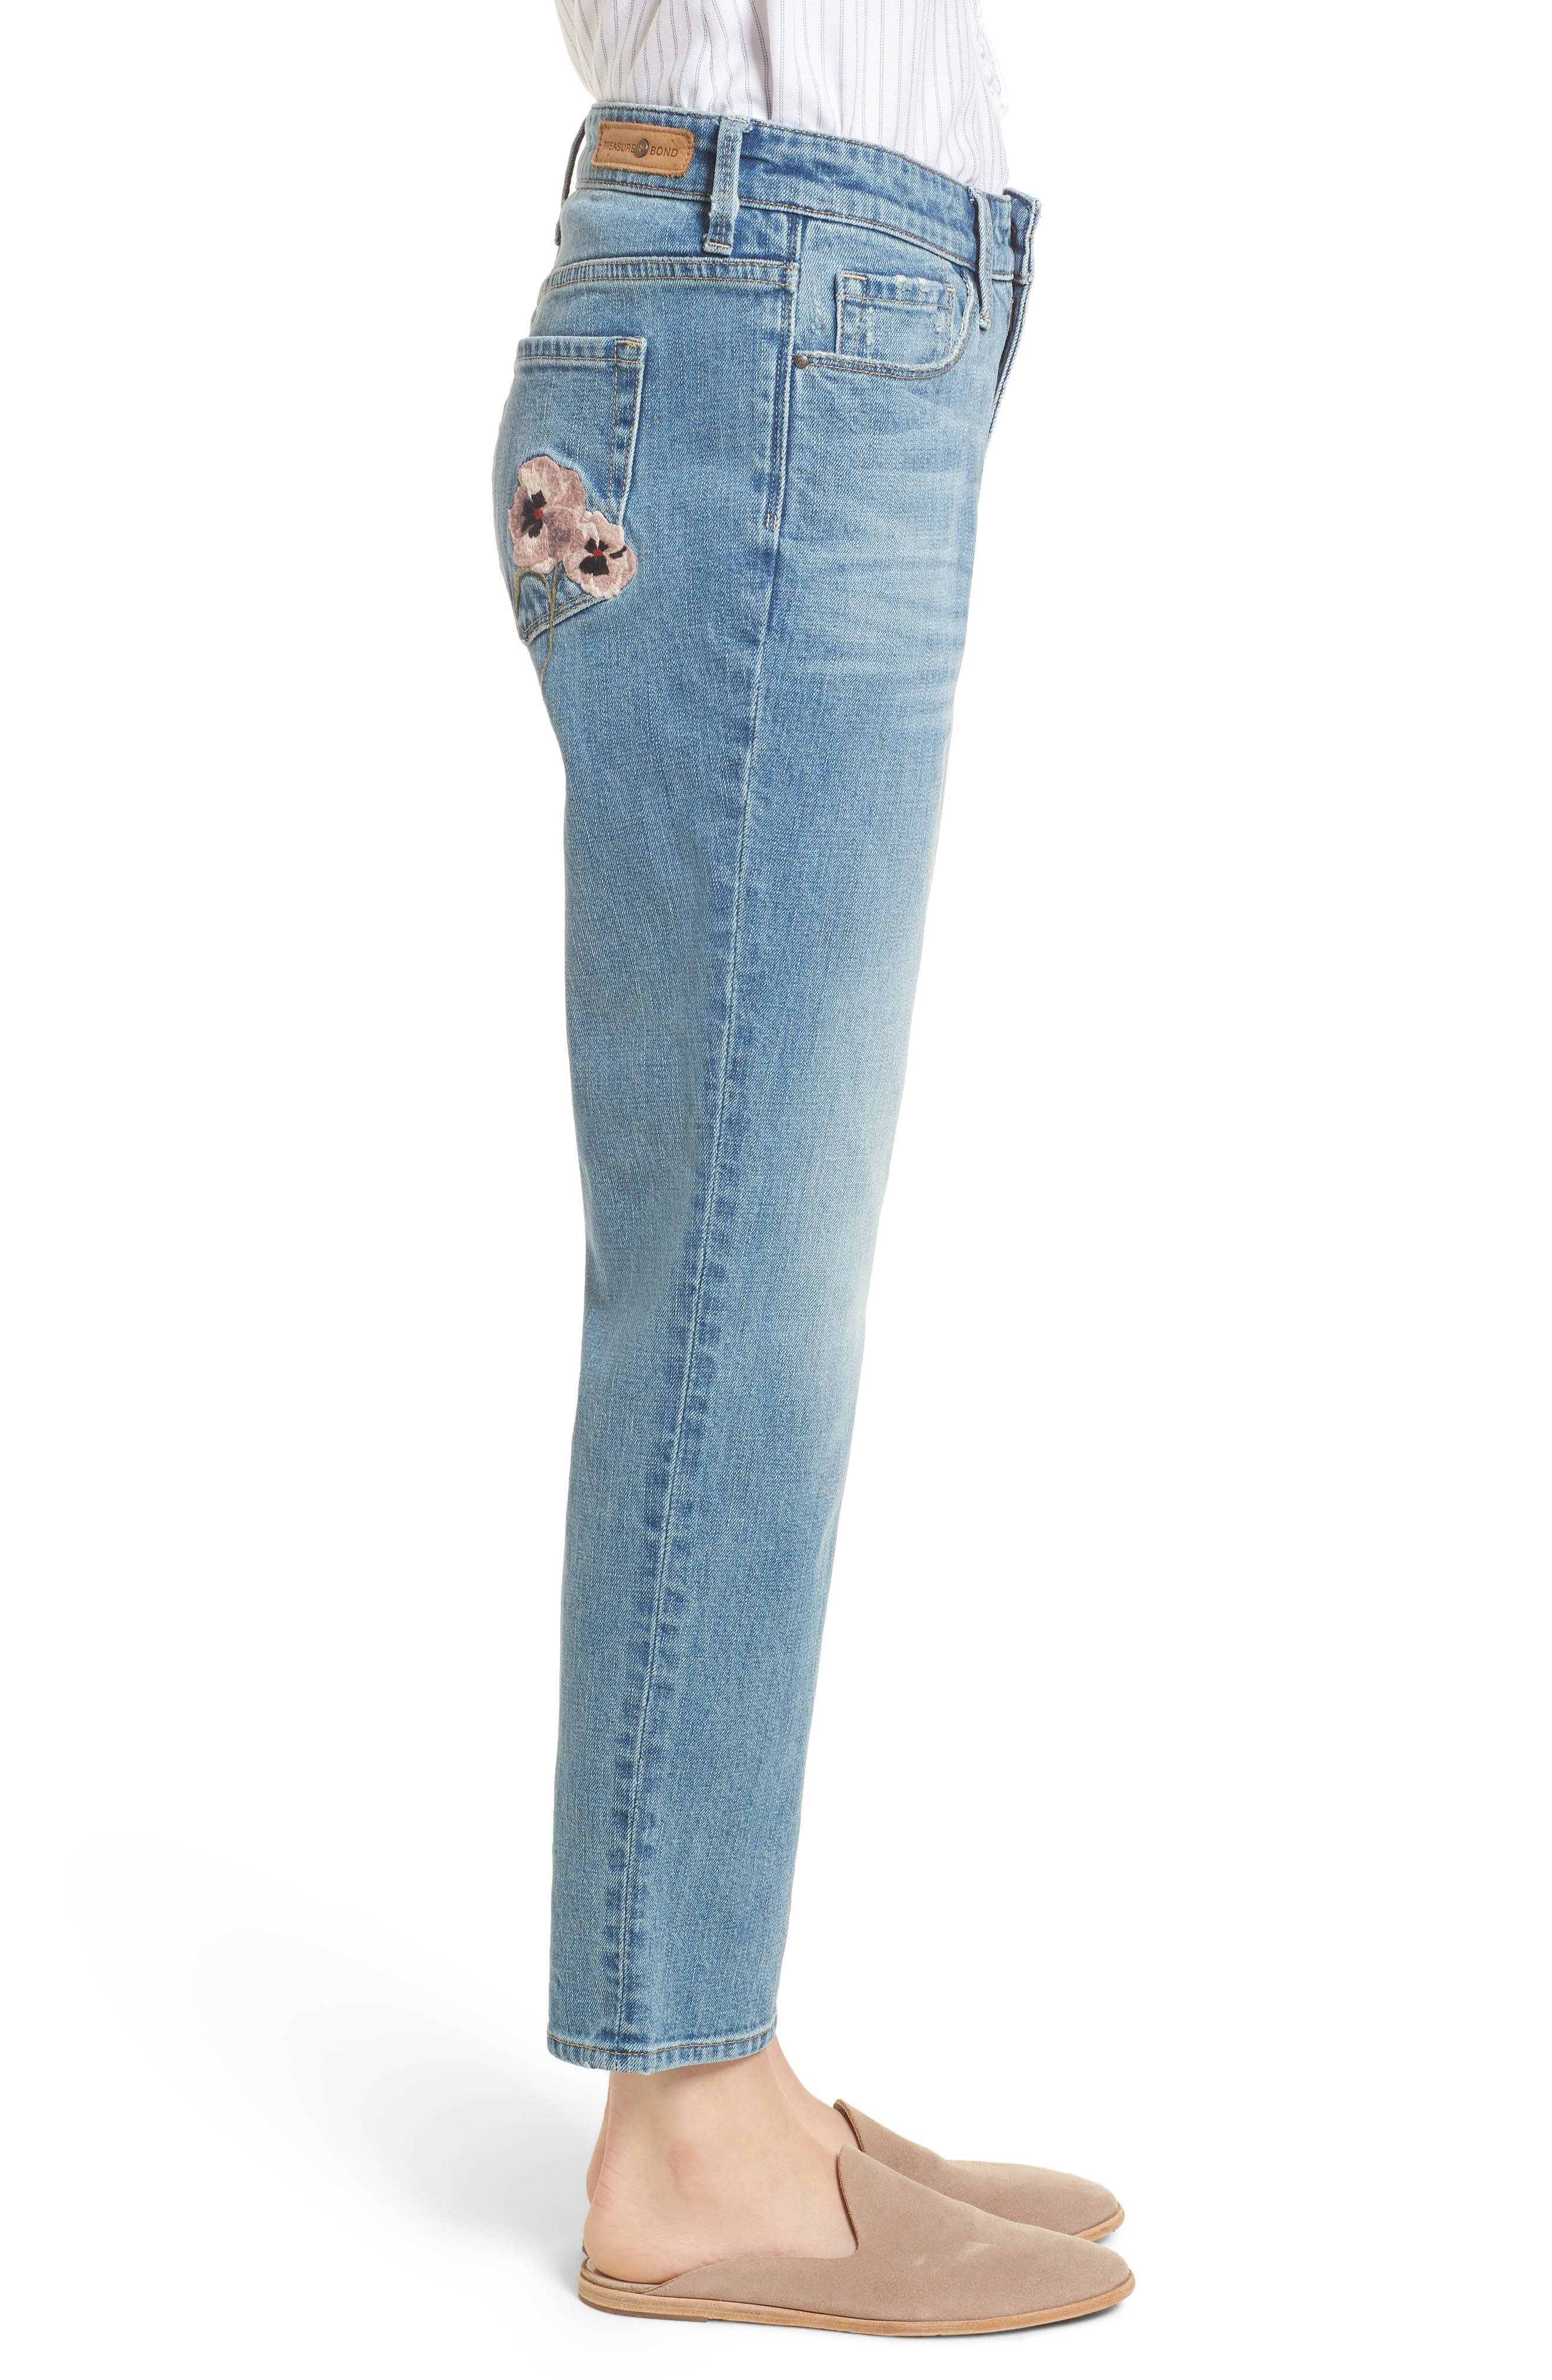 Pansy Embroidered Crop Boyfriend Jeans,                             Alternate thumbnail 3, color,                             400